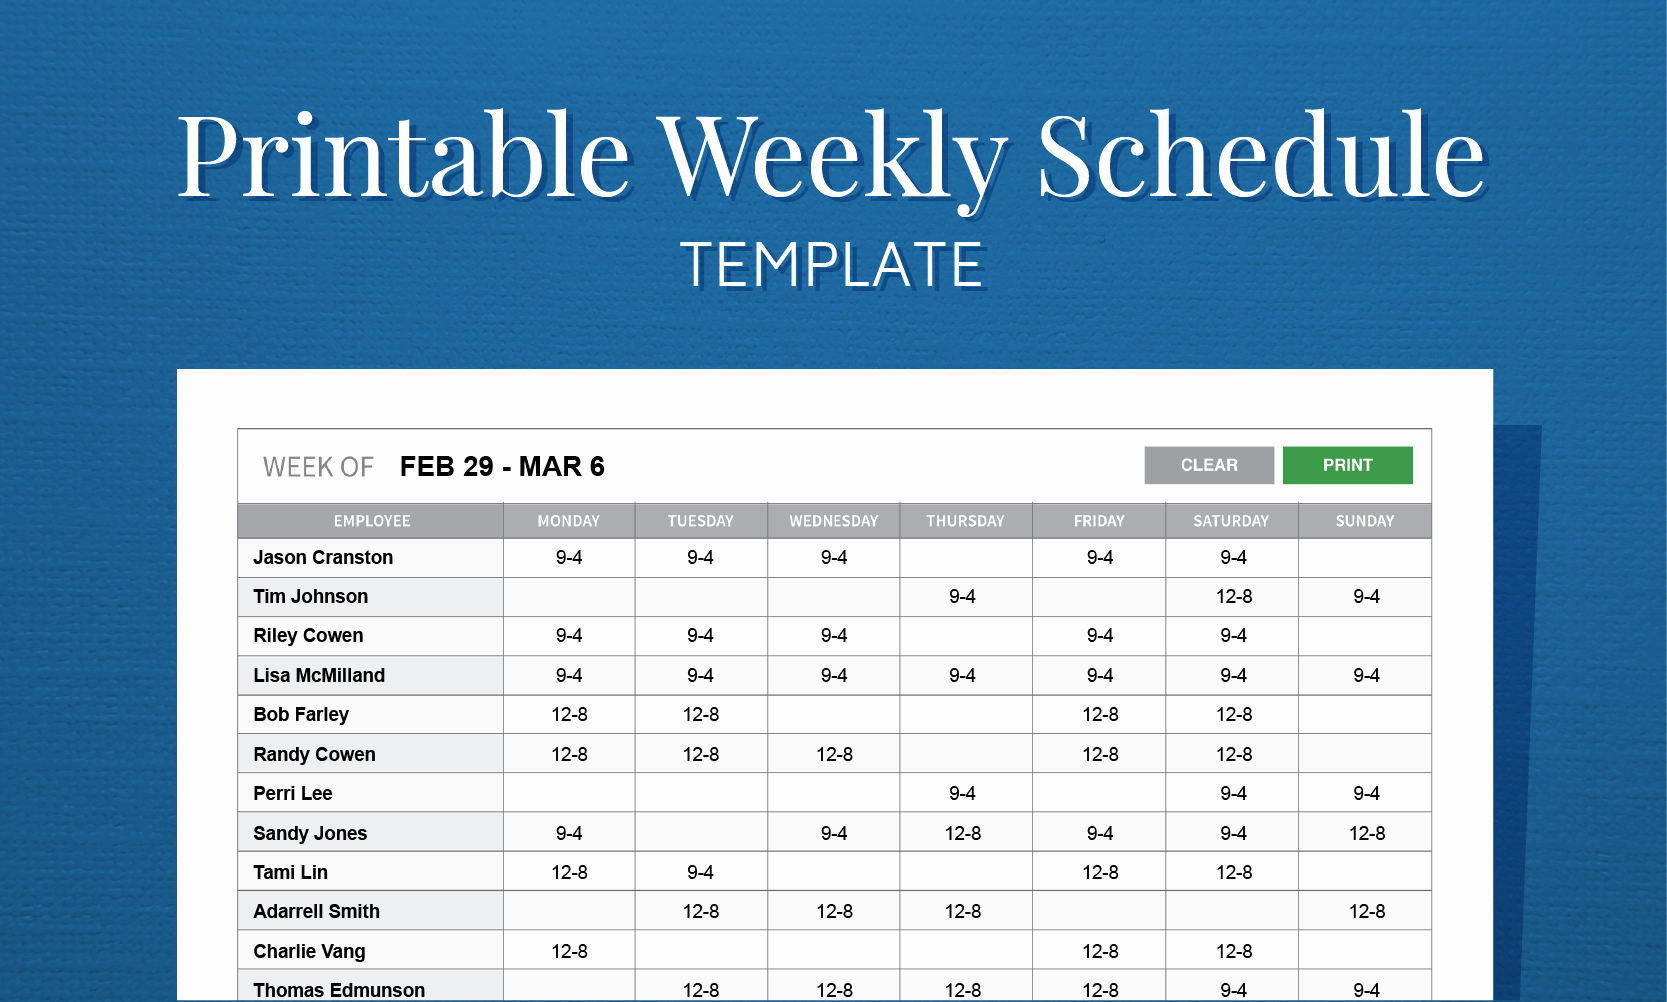 Employee Hourly Schedule Template Best Of Free Printable Work Schedule Template for Employee